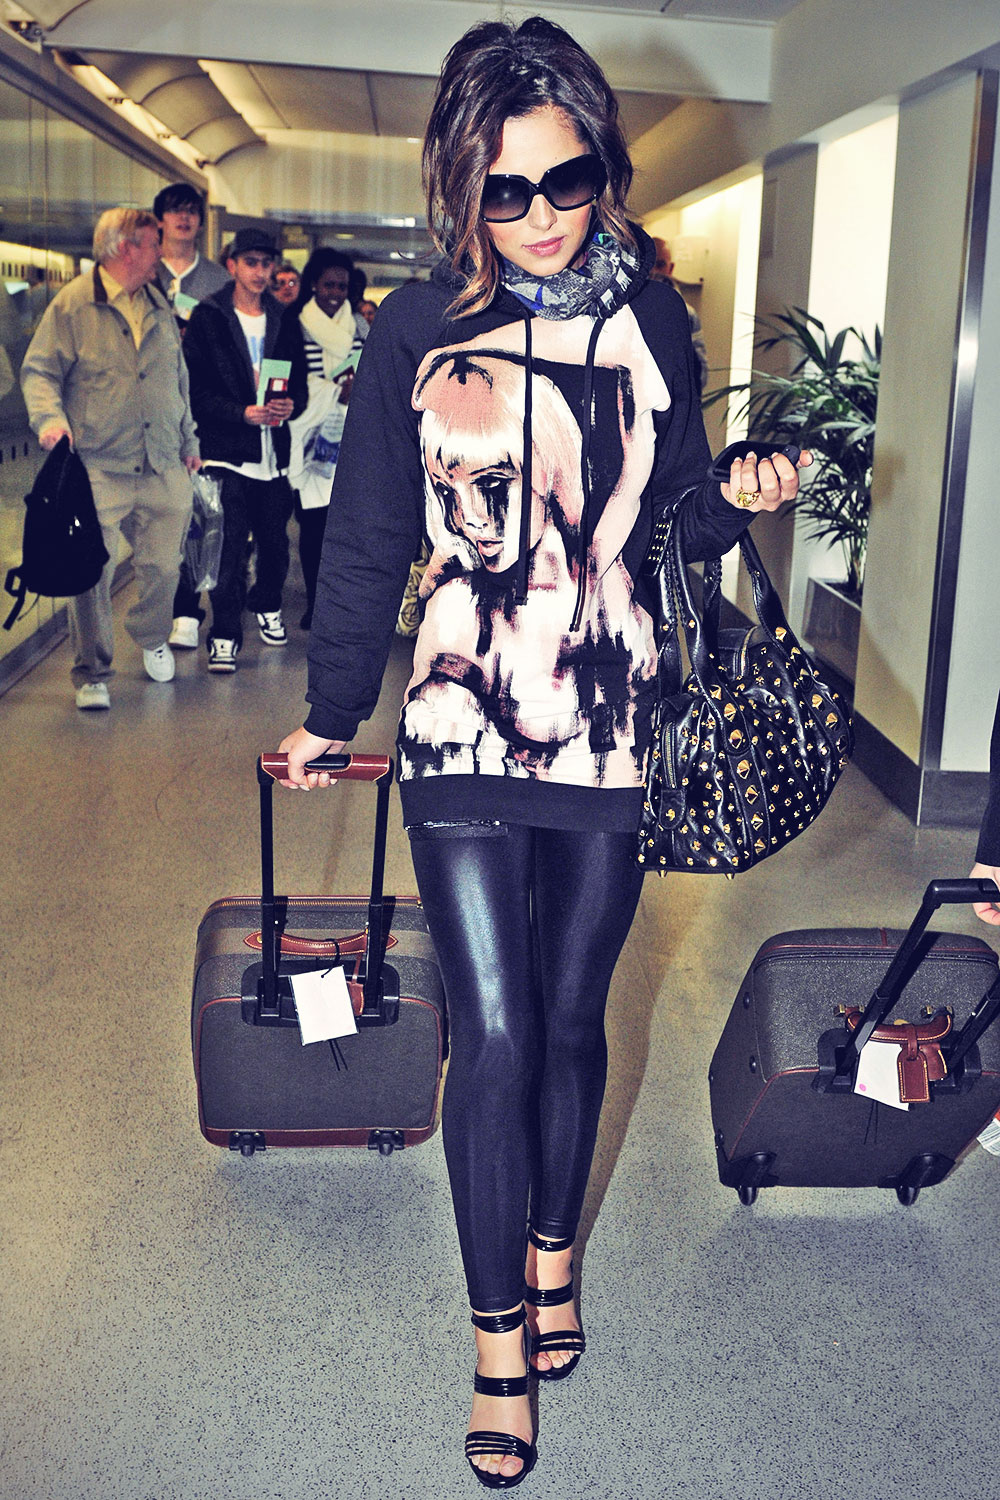 Cheryl Cole has jetted out to Los Angeles